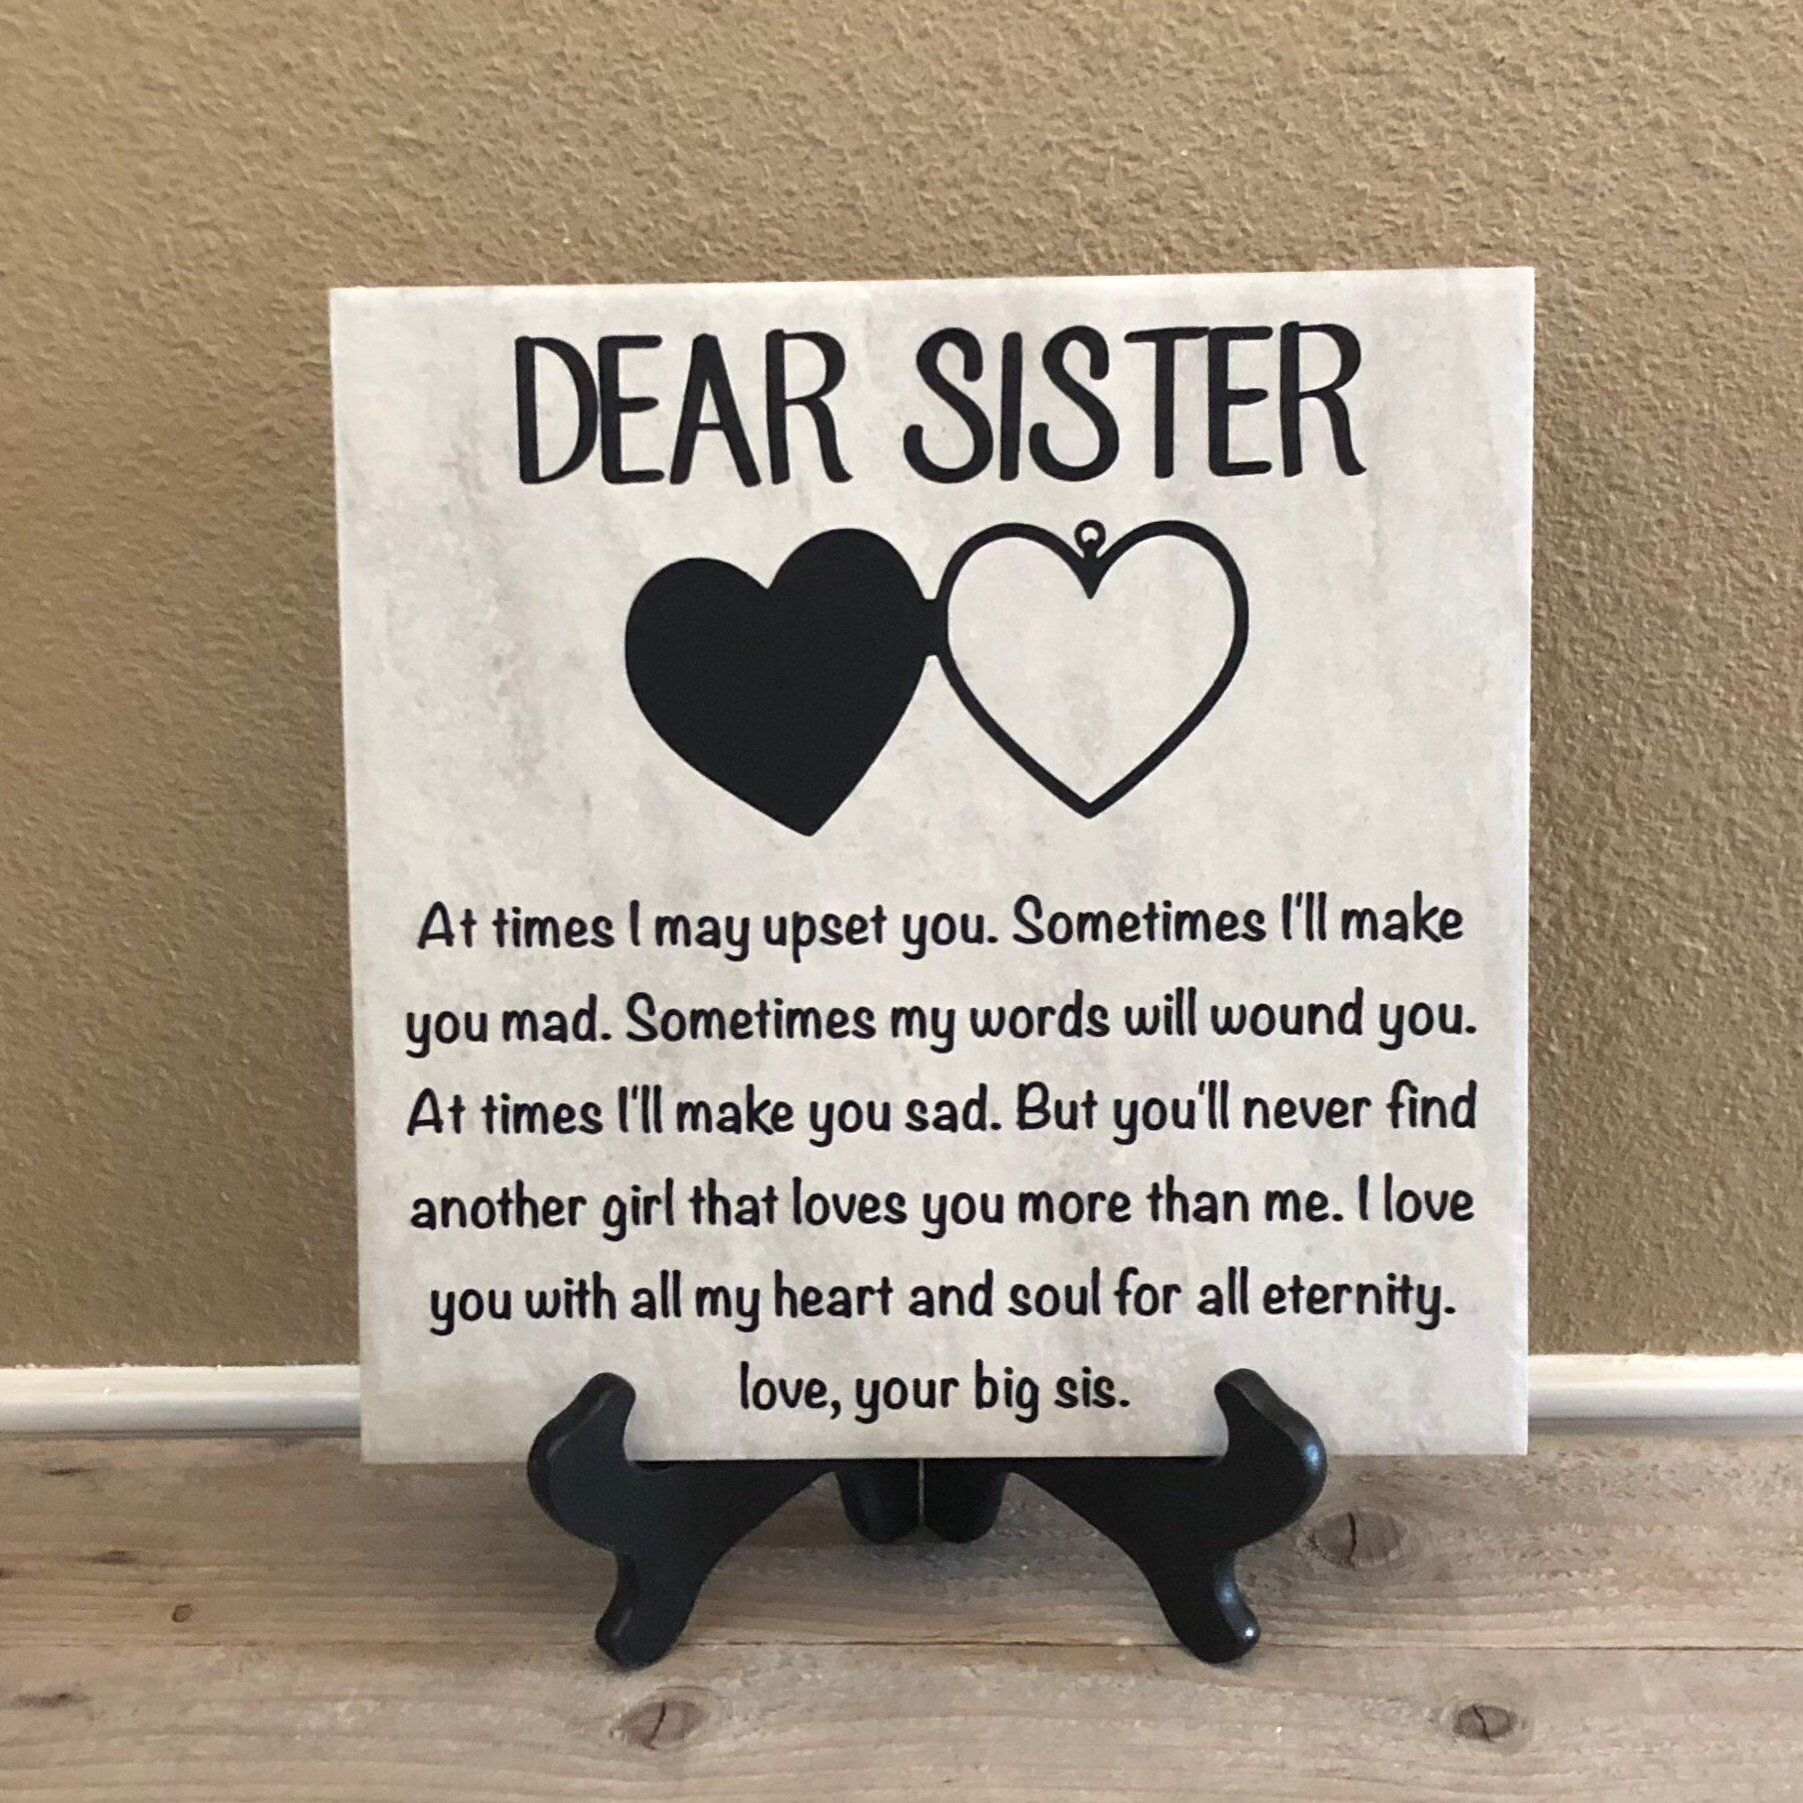 Gift For Sister Birthday Gift For Sister Christmas Gift For Etsy Birthday Gifts For Sister Unique Gifts For Sister Personalized Christmas Gifts